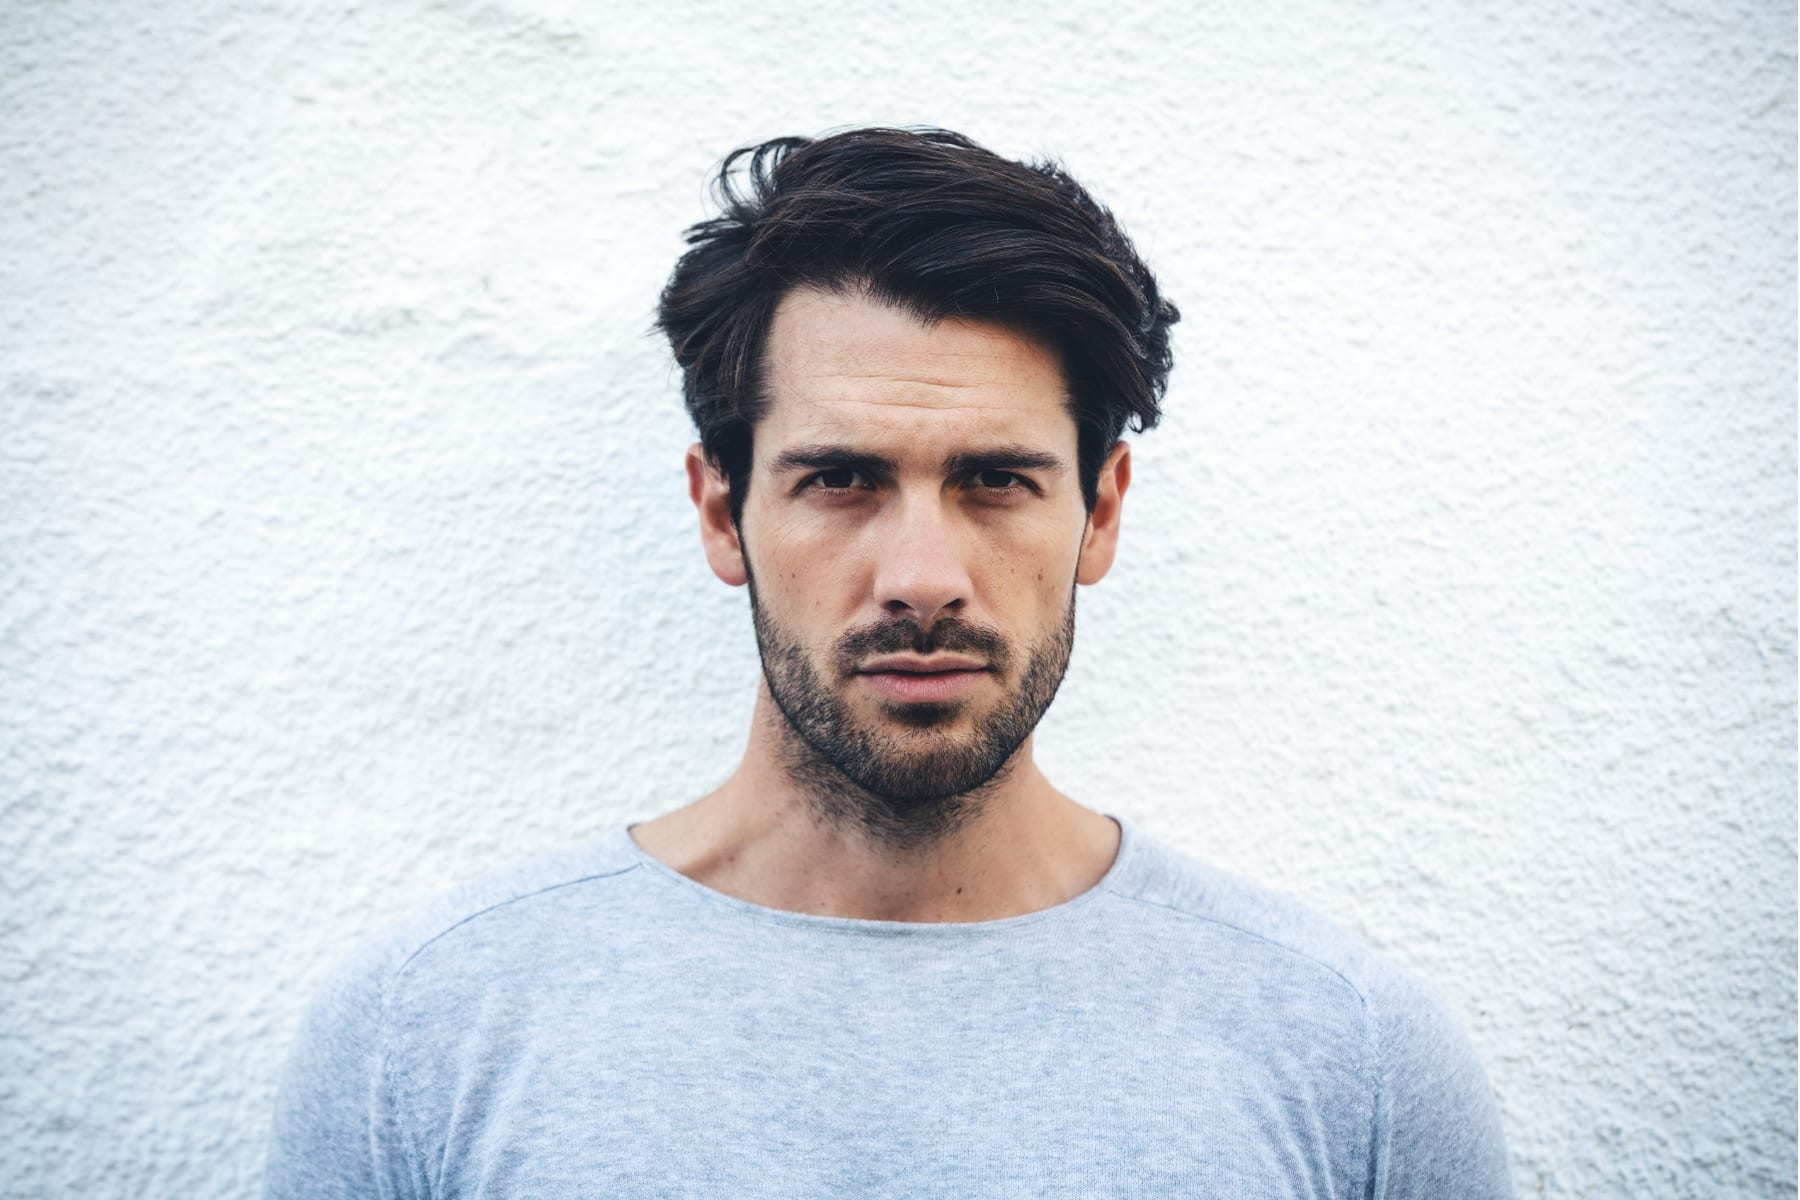 How to Get the 3-Day Stubble Beard Look